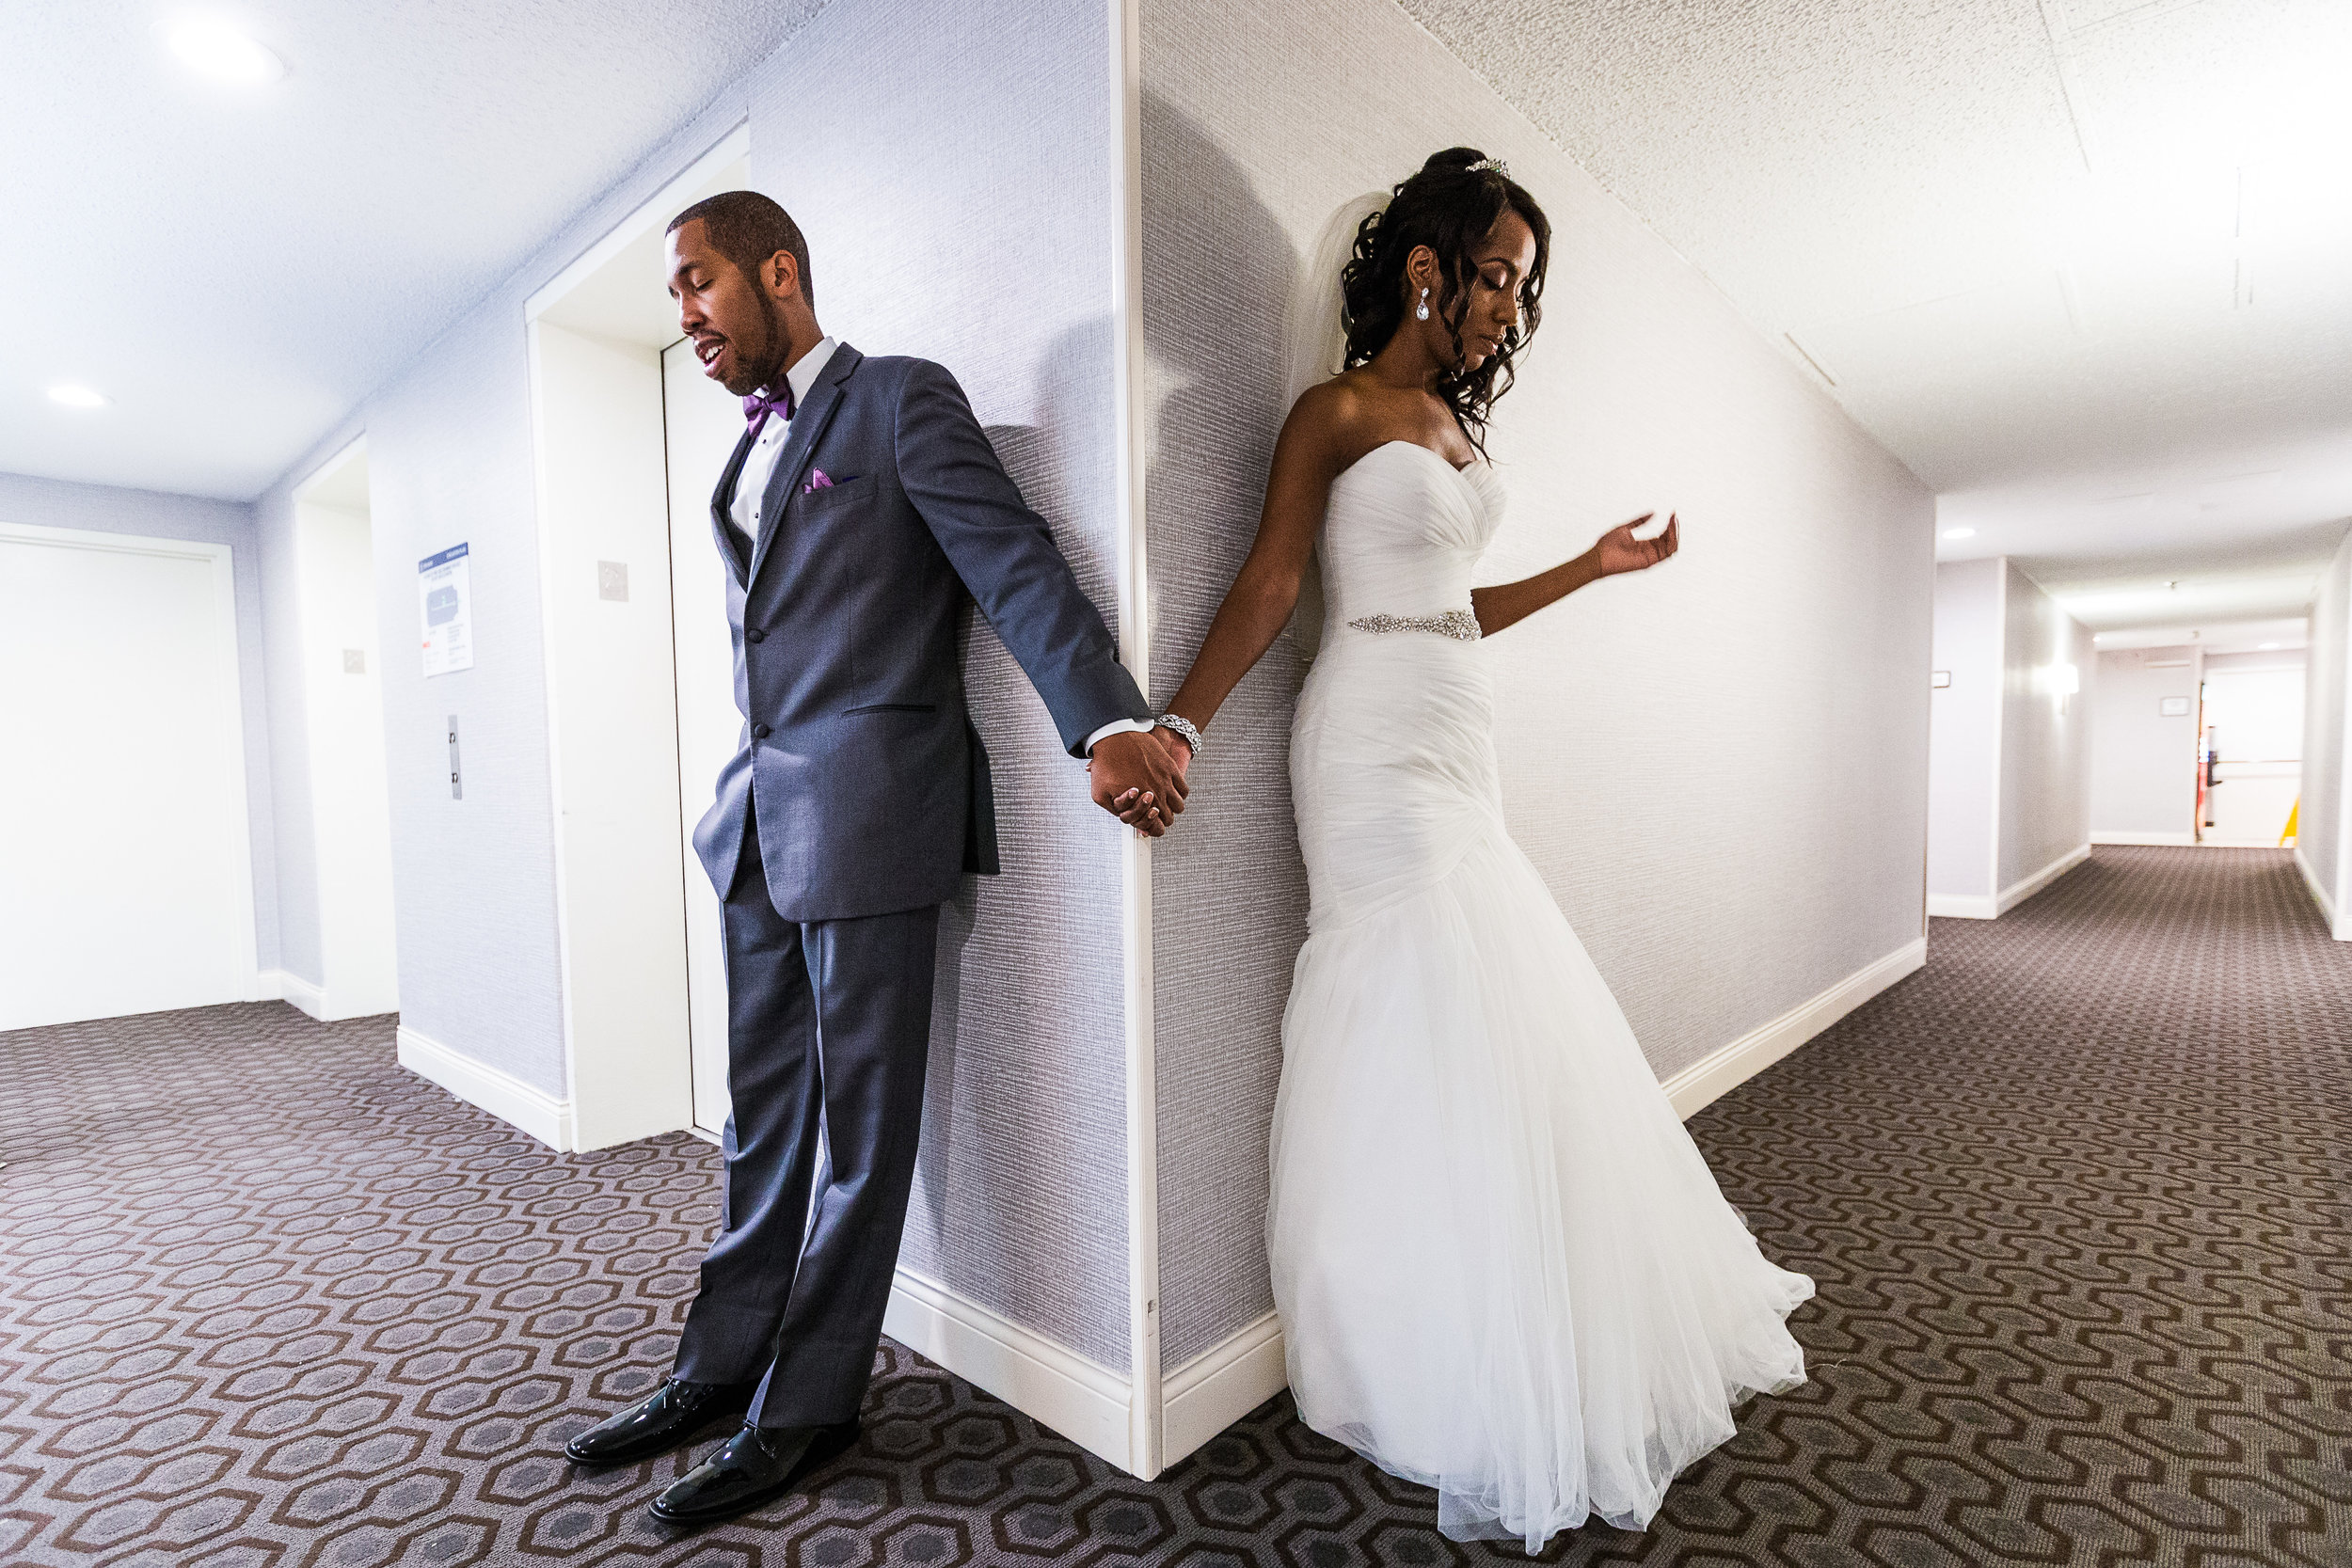 wedding-photographers-in-st-louis-the-hargroves-marriott-westport-171.jpg